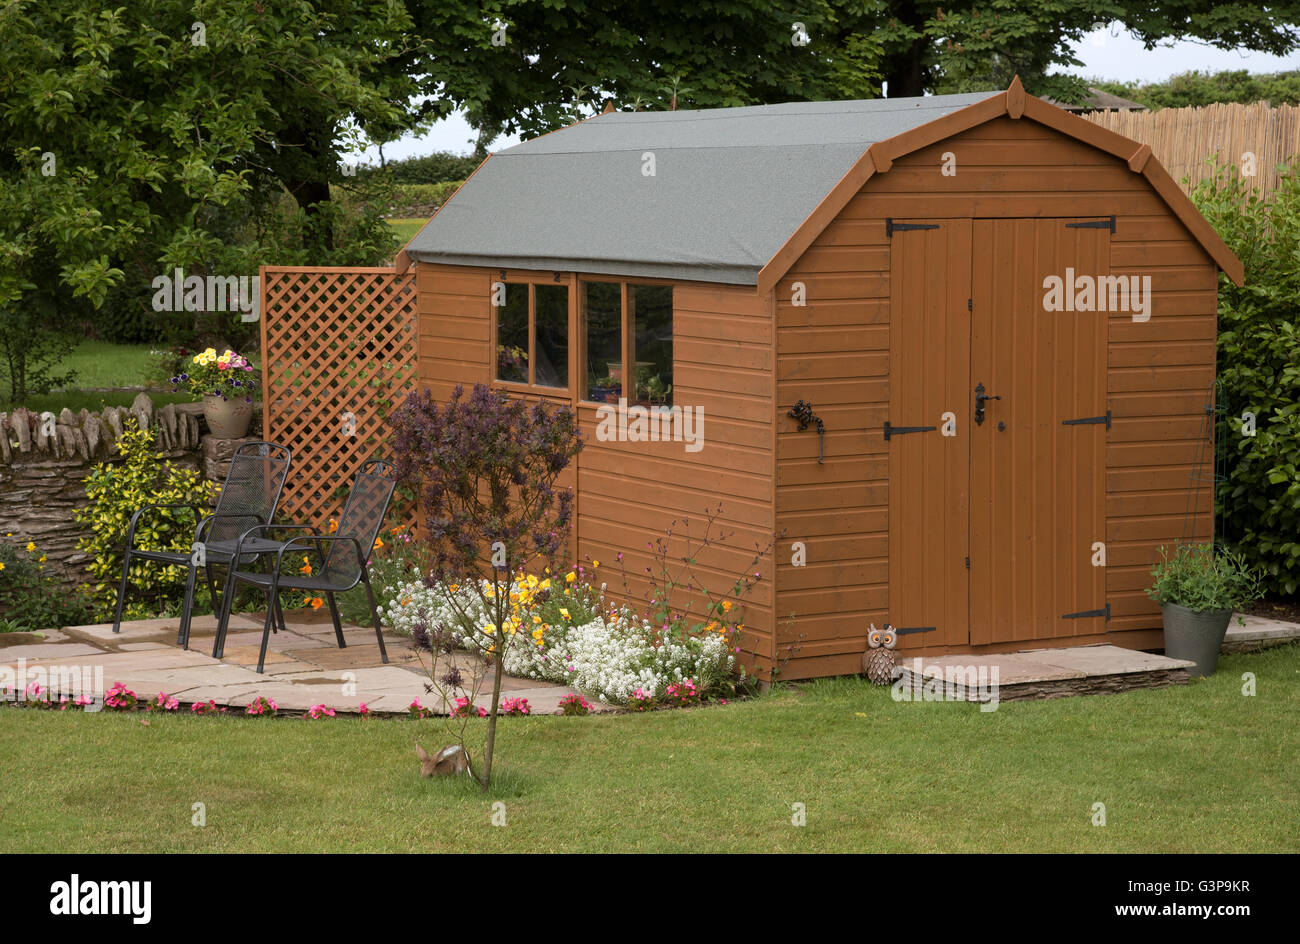 Small Garden Shed Stock Photos & Small Garden Shed Stock Images - Alamy